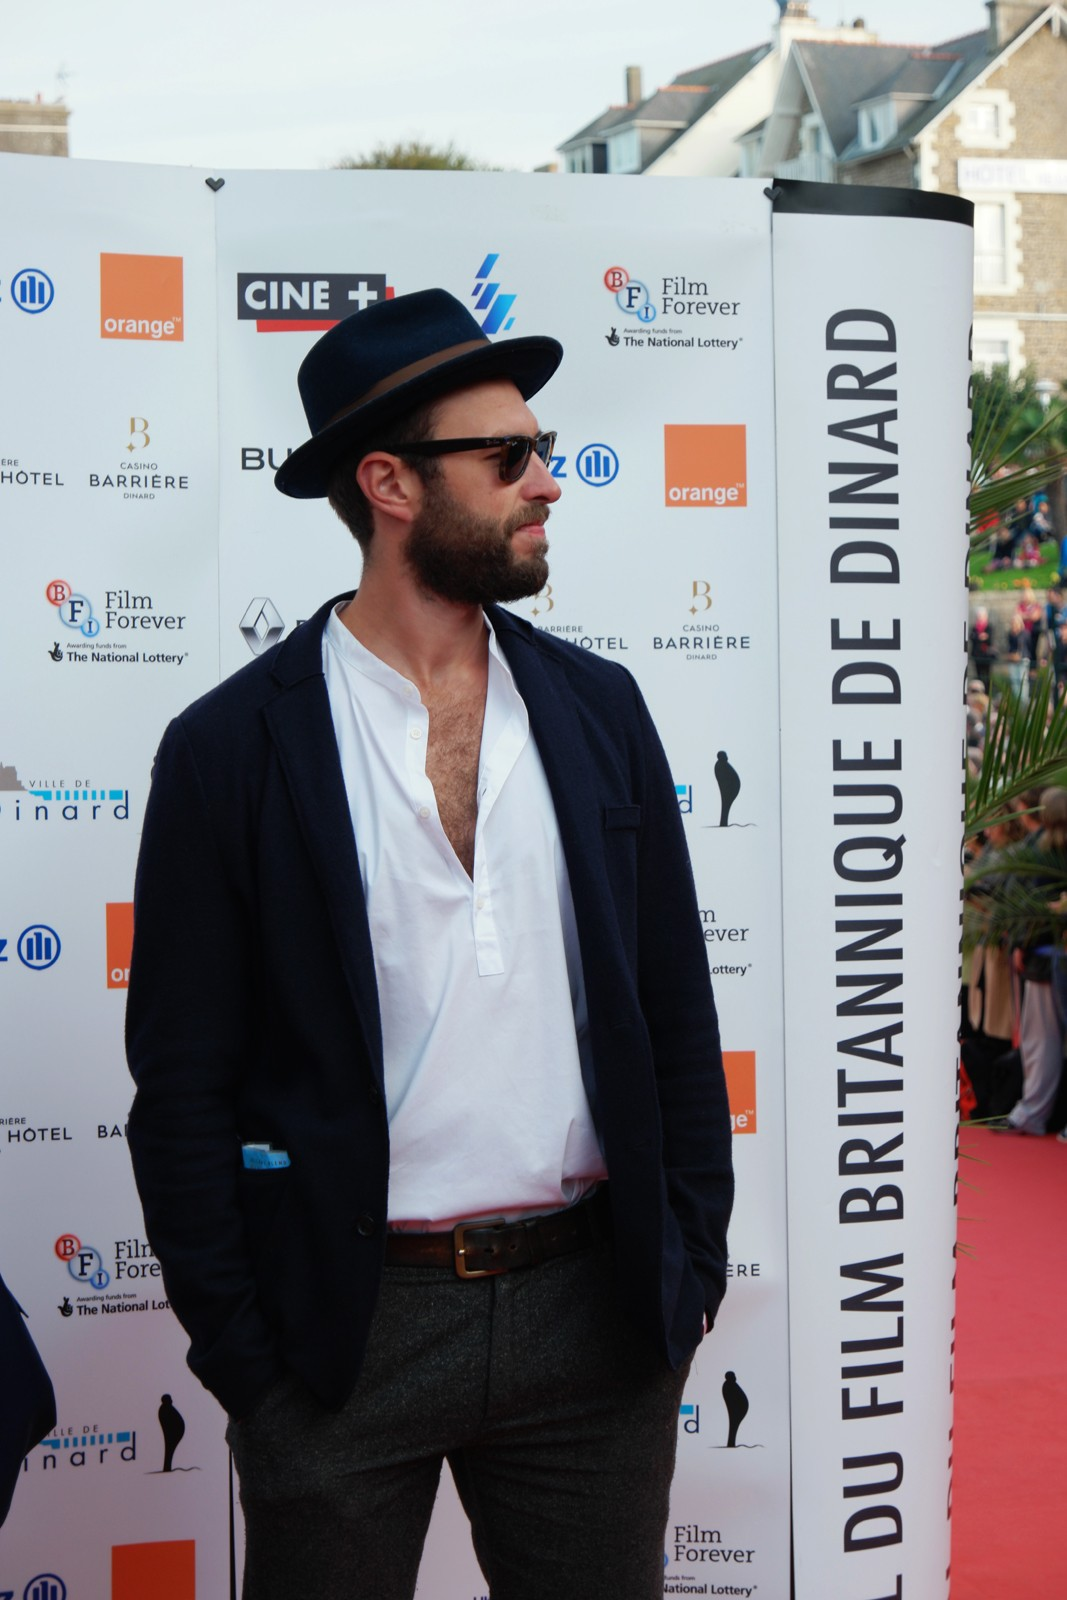 Duane Hopkins movie director movie festival du film Britannique de Dinard 2015 British tapis rouge red carpet photo by usofparis